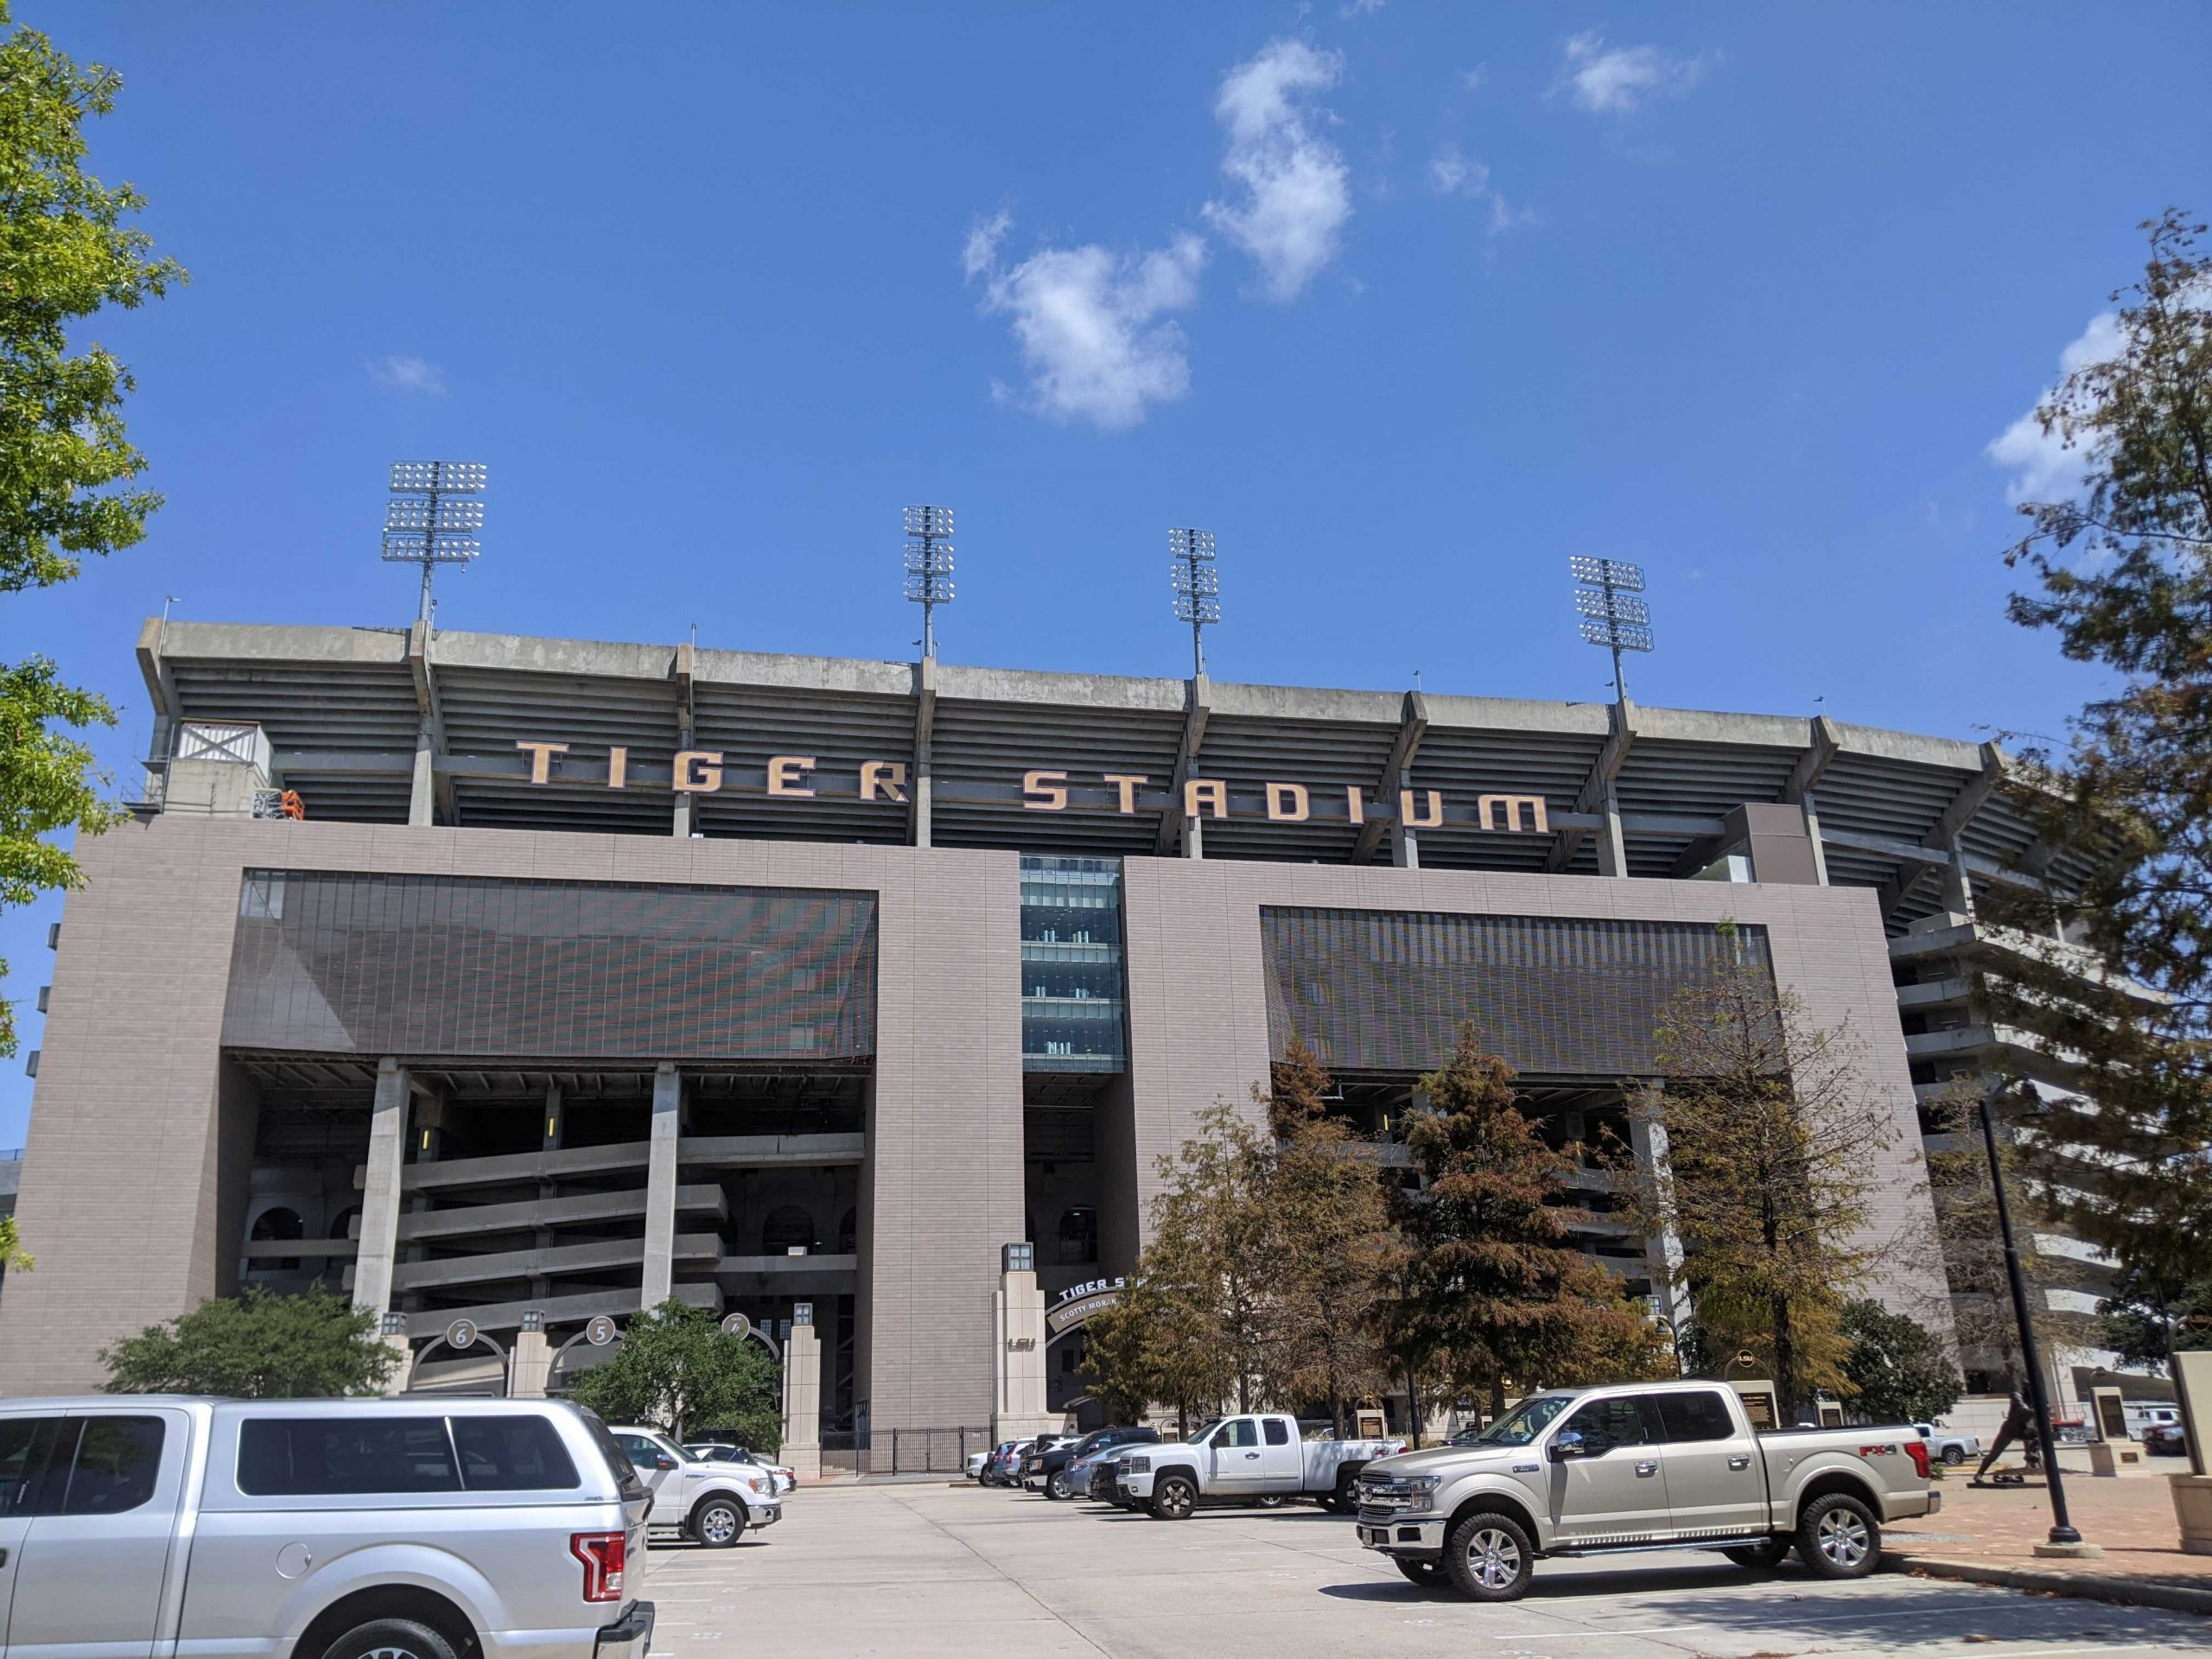 LSU Athletics administrator alleges more racism, sexism in department, USA TODAY reports